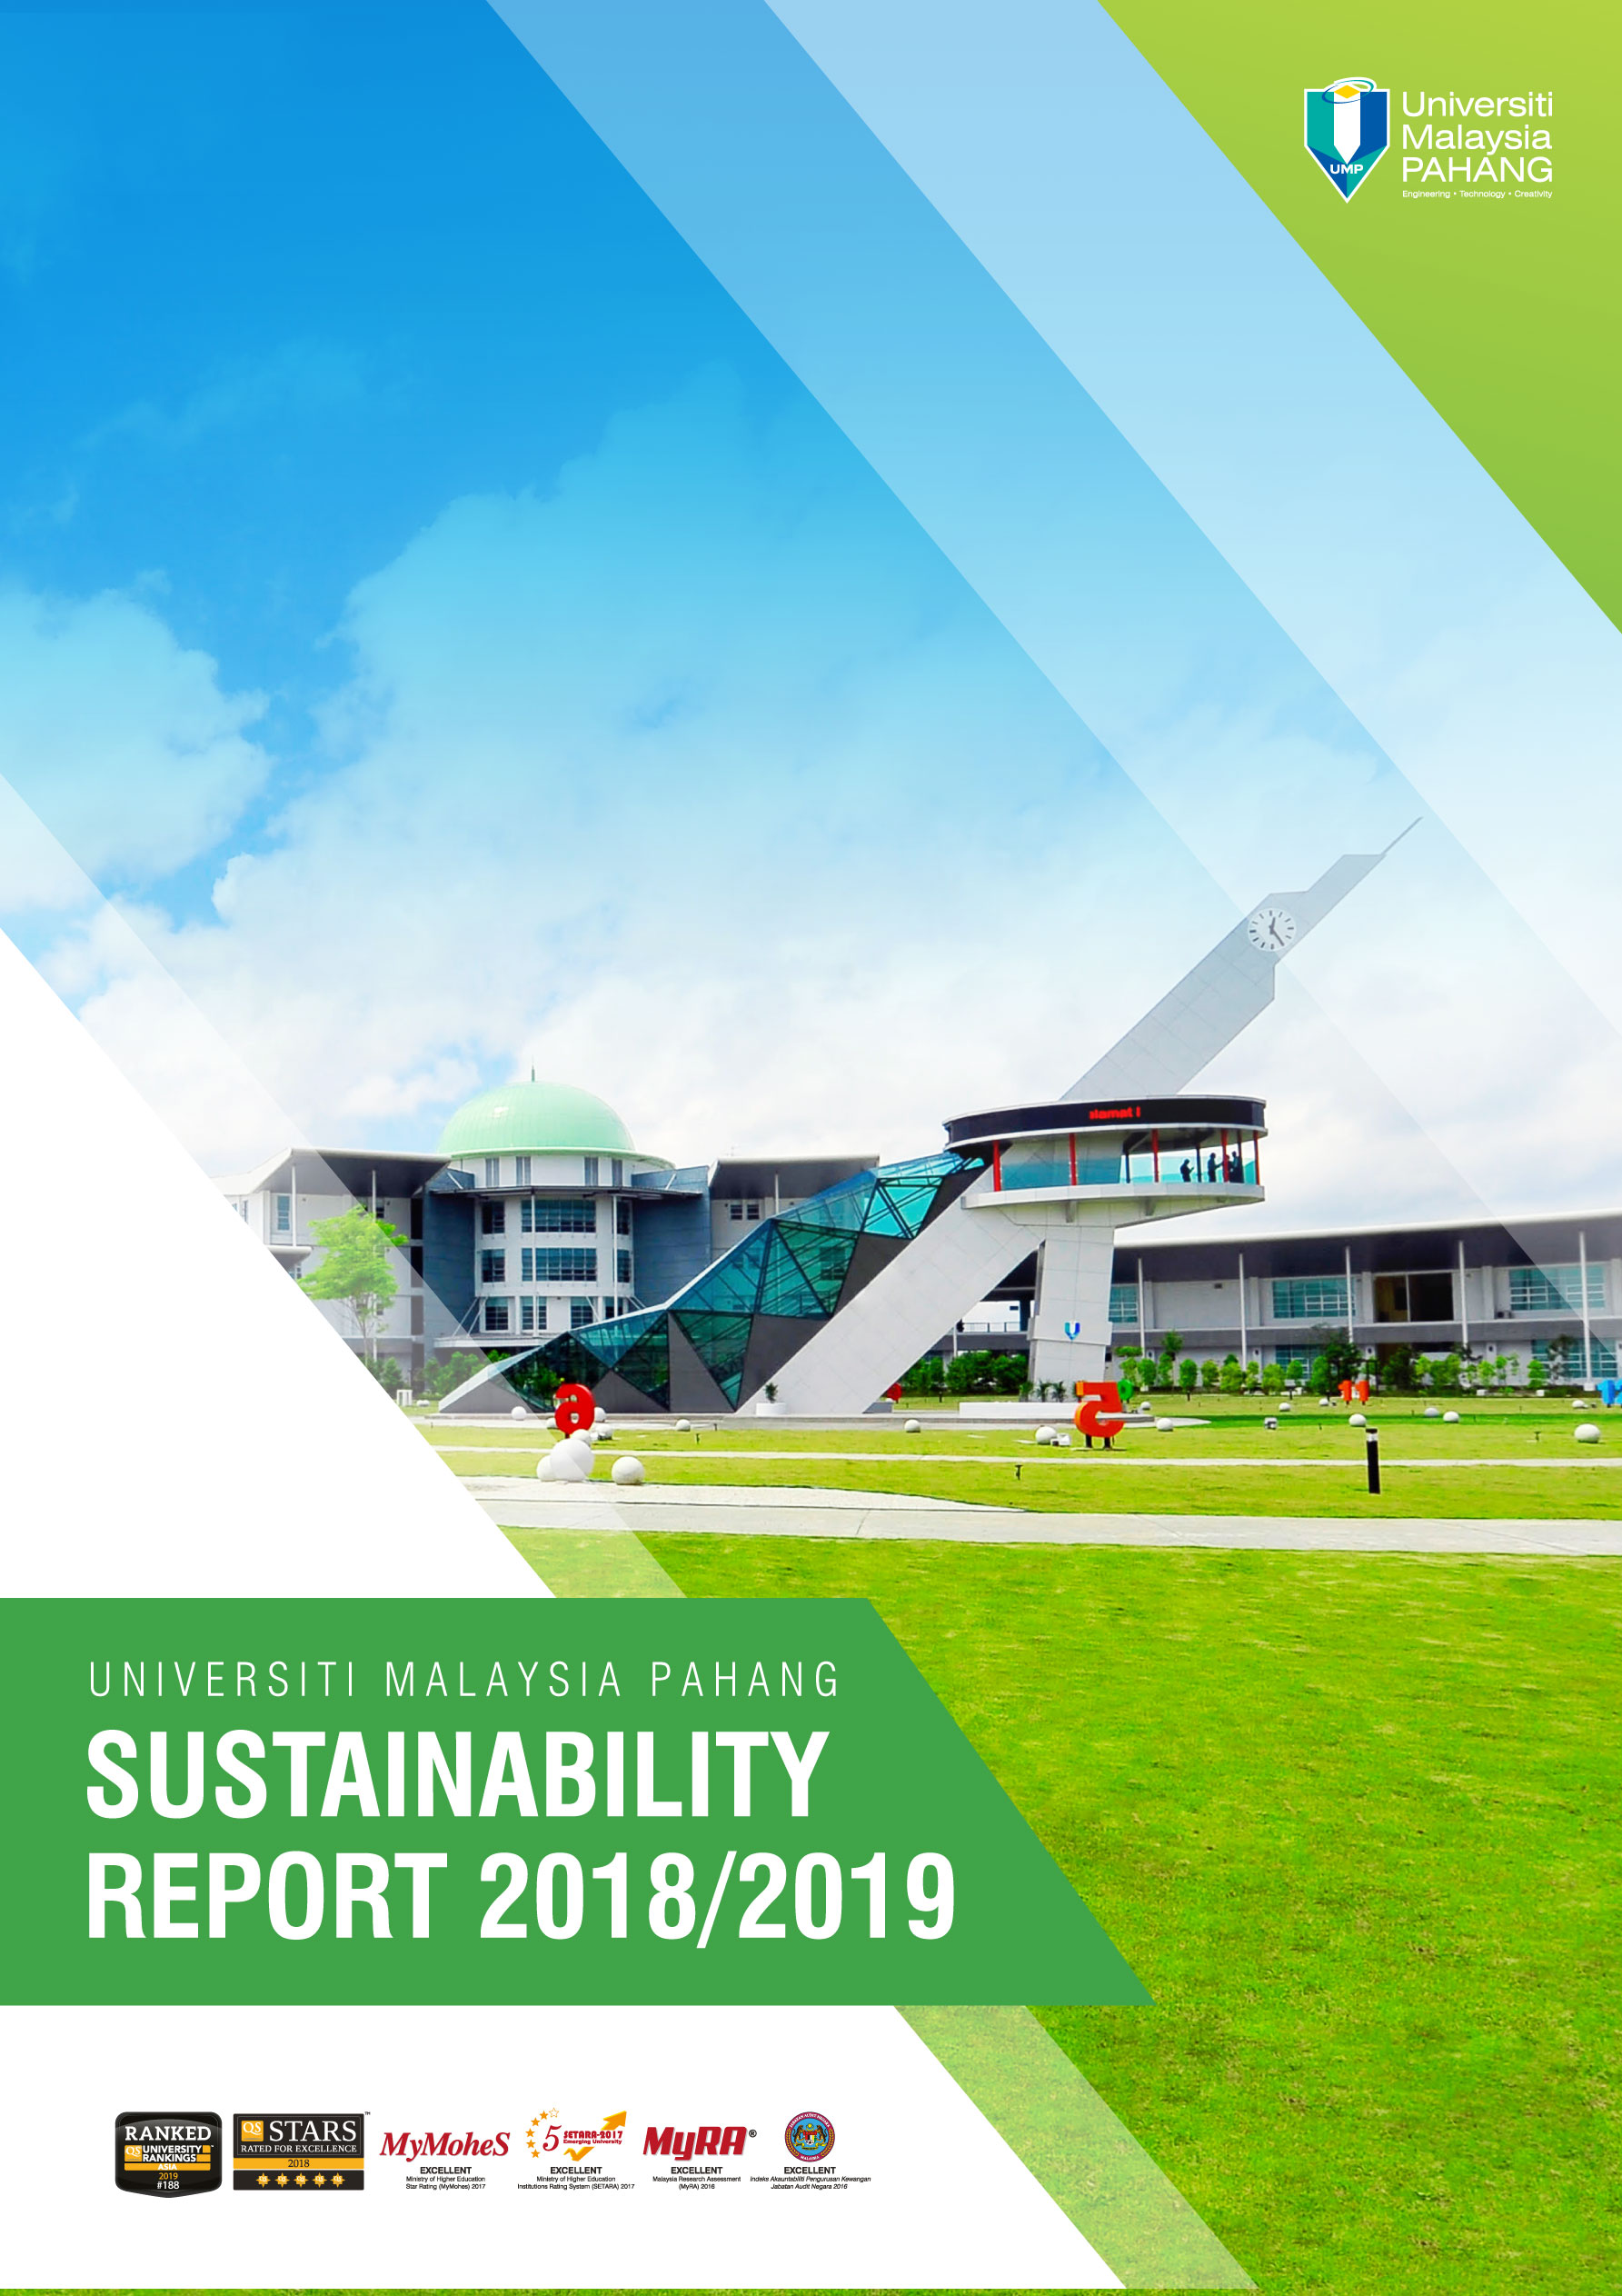 UMP SUSTAINABILITY REPORT 2018/2019